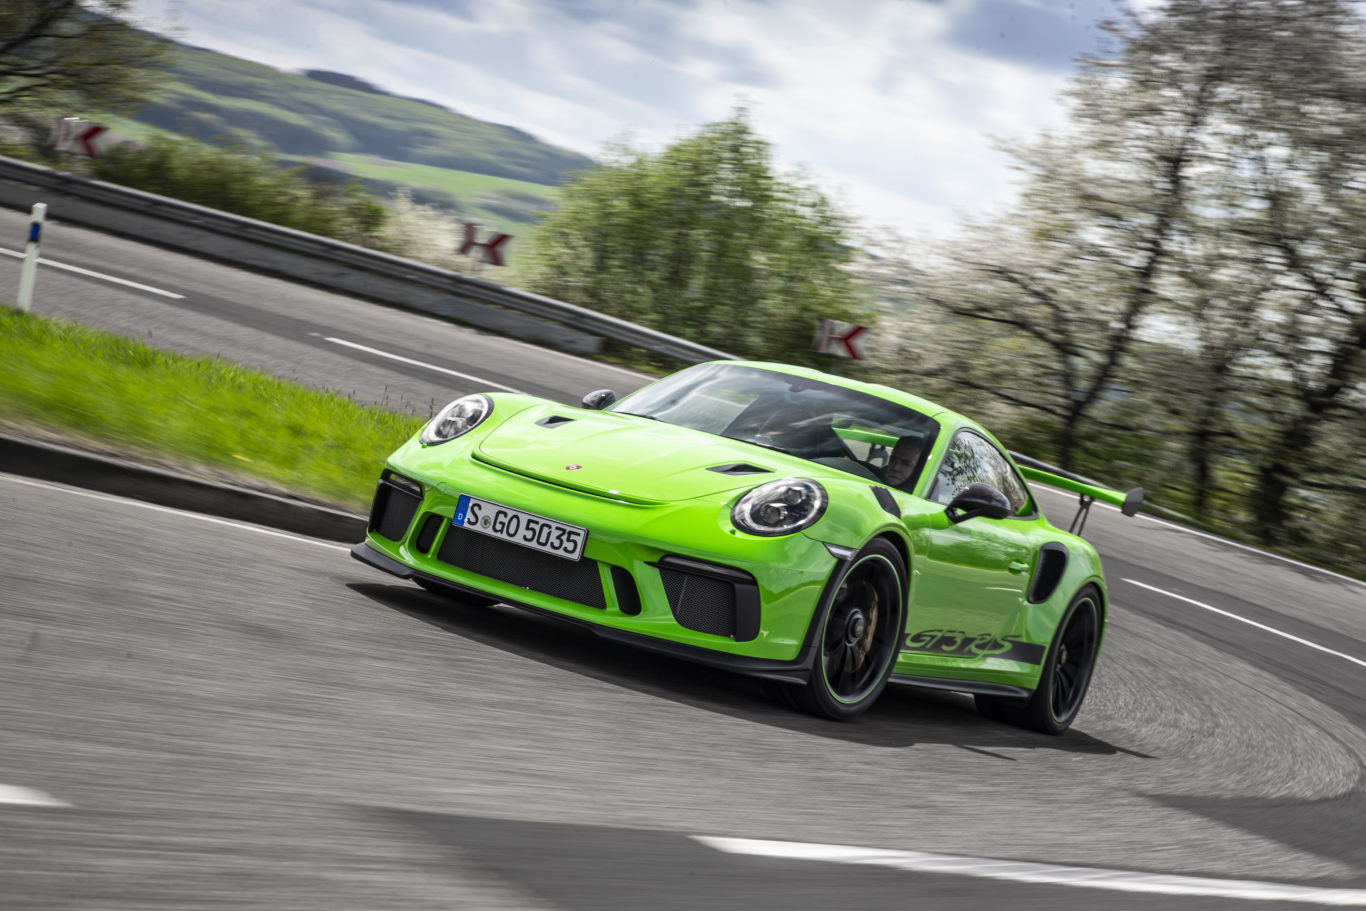 The latest model follows on from a long line of Porsche RS models